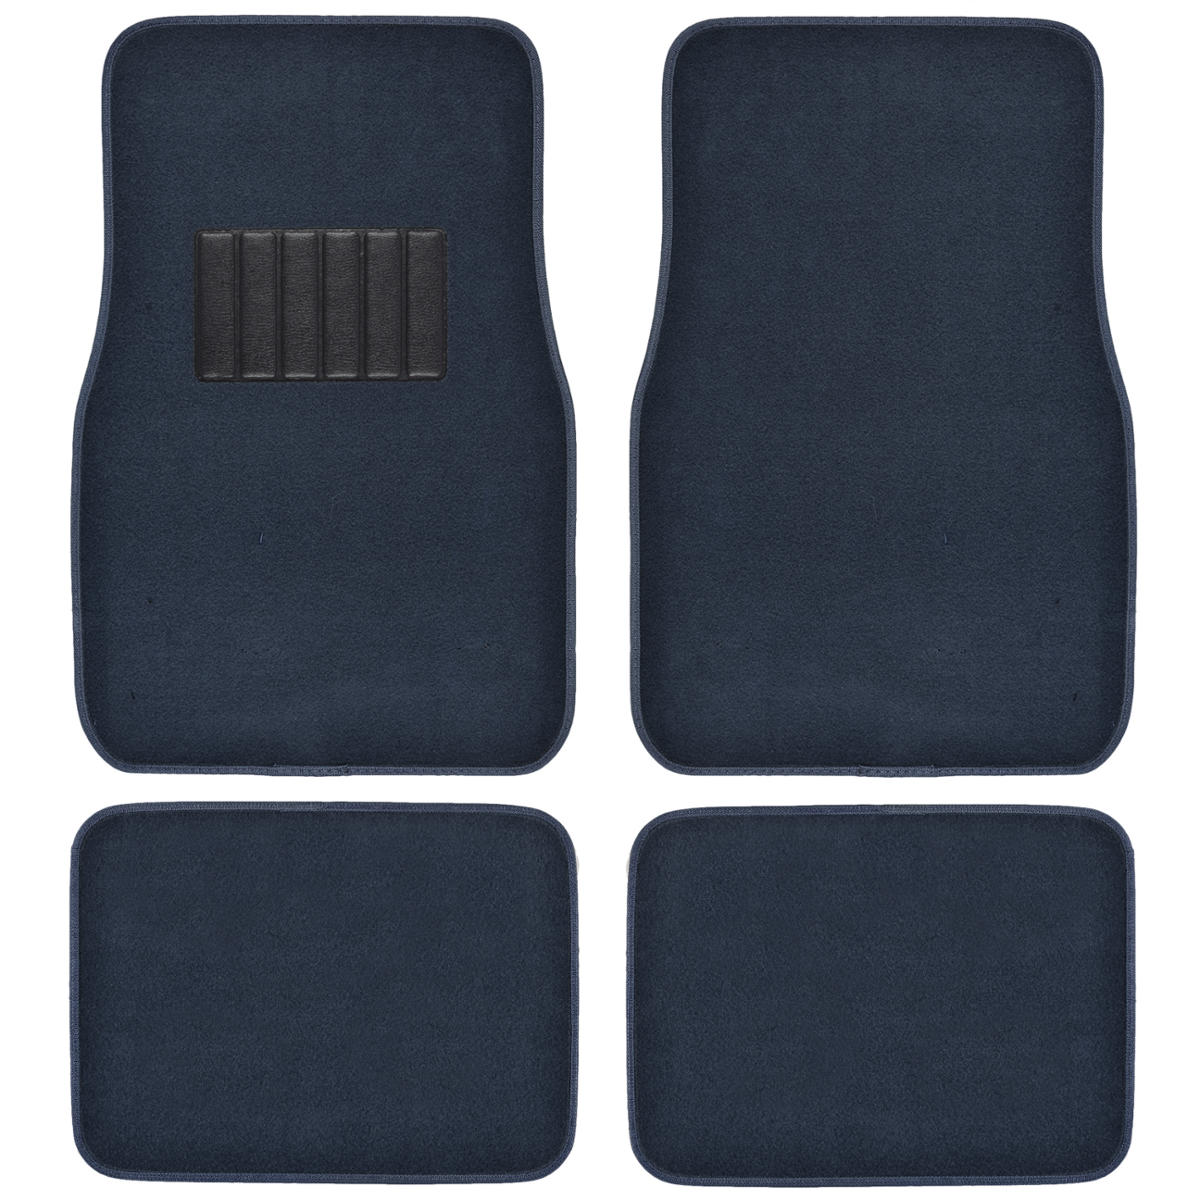 blue car floor mats liner pads utility mat standard fit 4pc auto interior. Black Bedroom Furniture Sets. Home Design Ideas